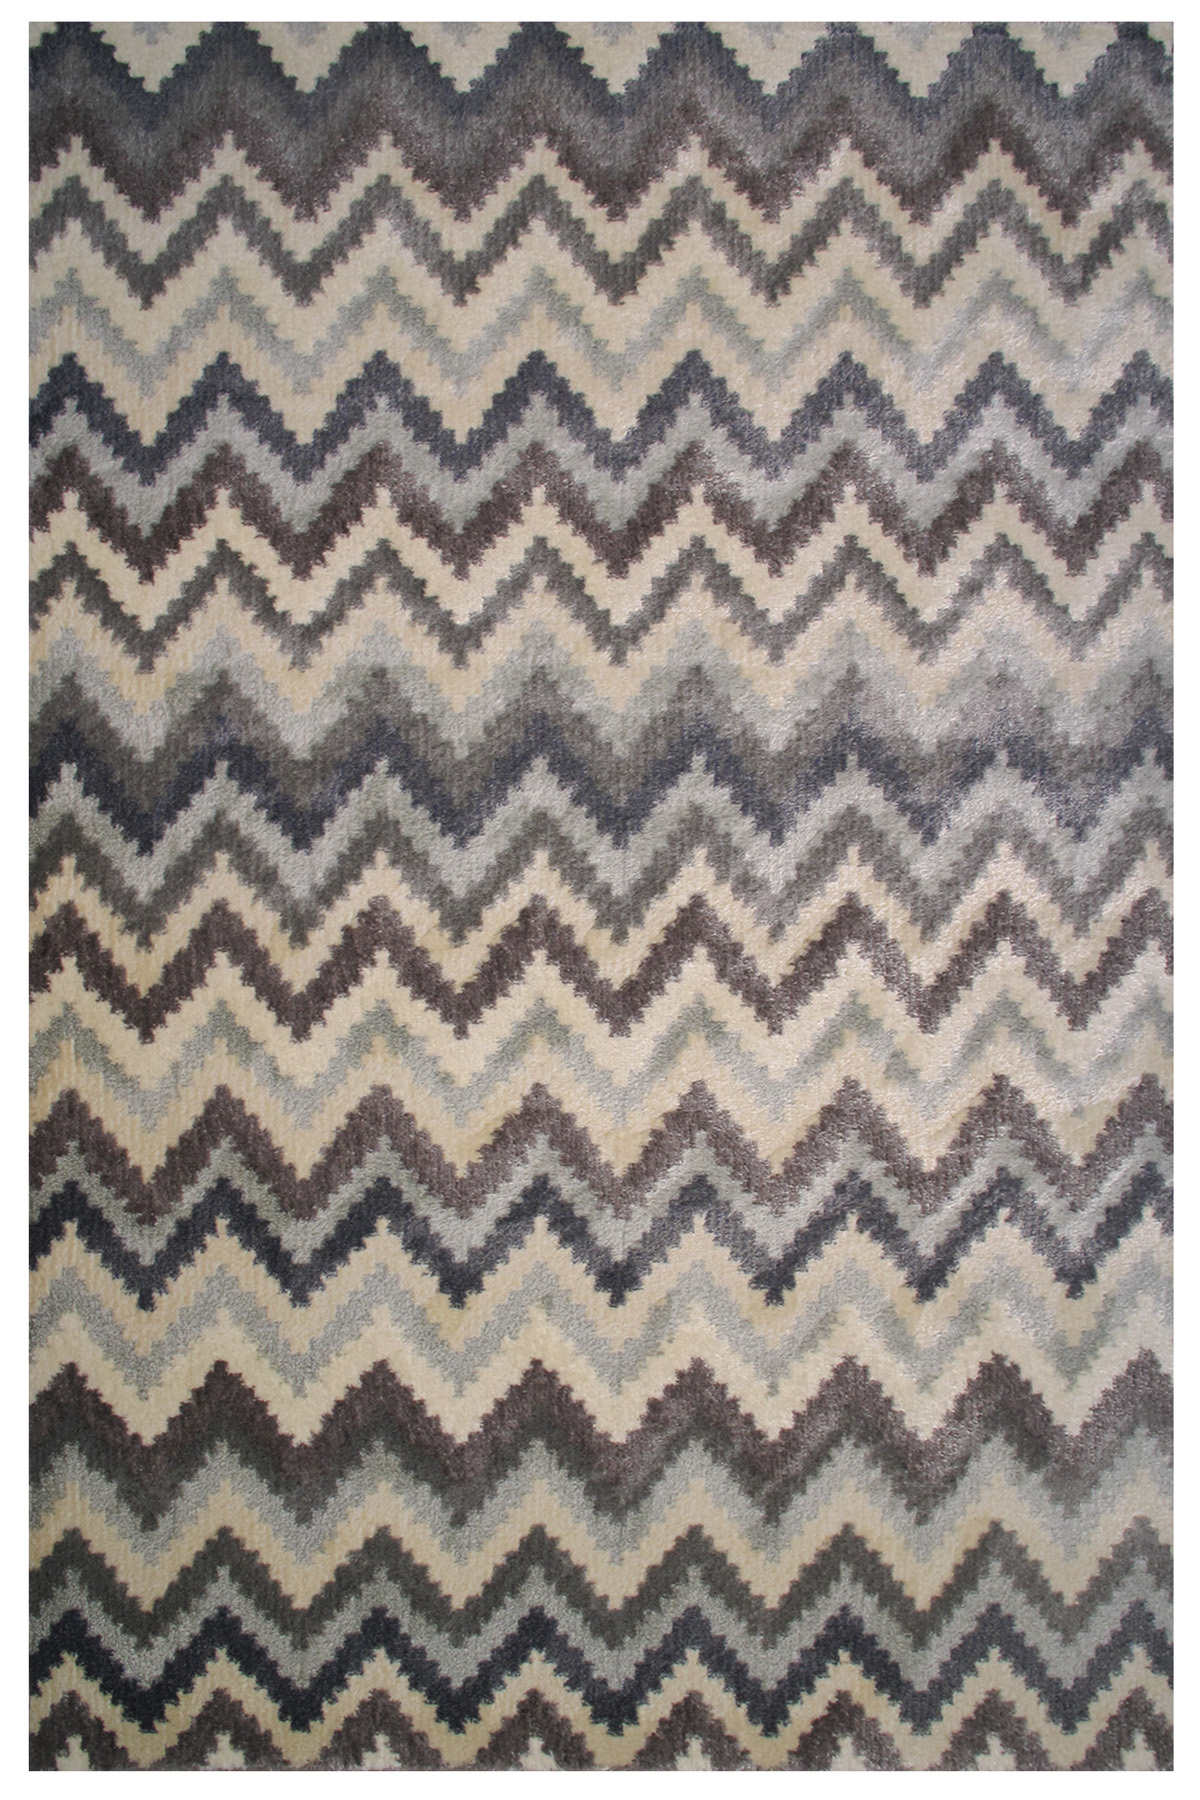 La Rug Soho 328-15 Multi-color